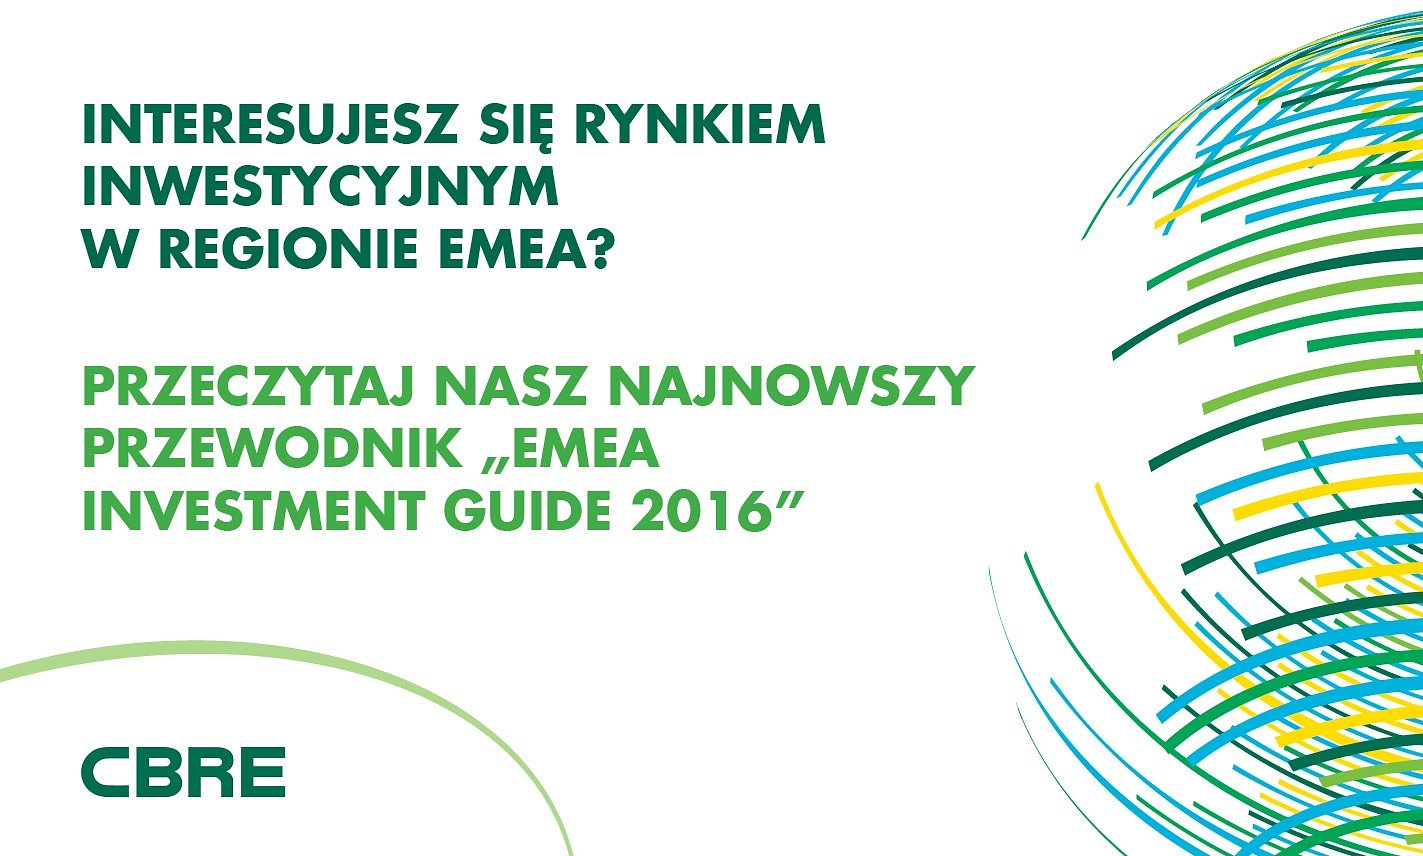 CBRE OPRACOWAŁO EMEA INVESTMENT GUIDE 2016